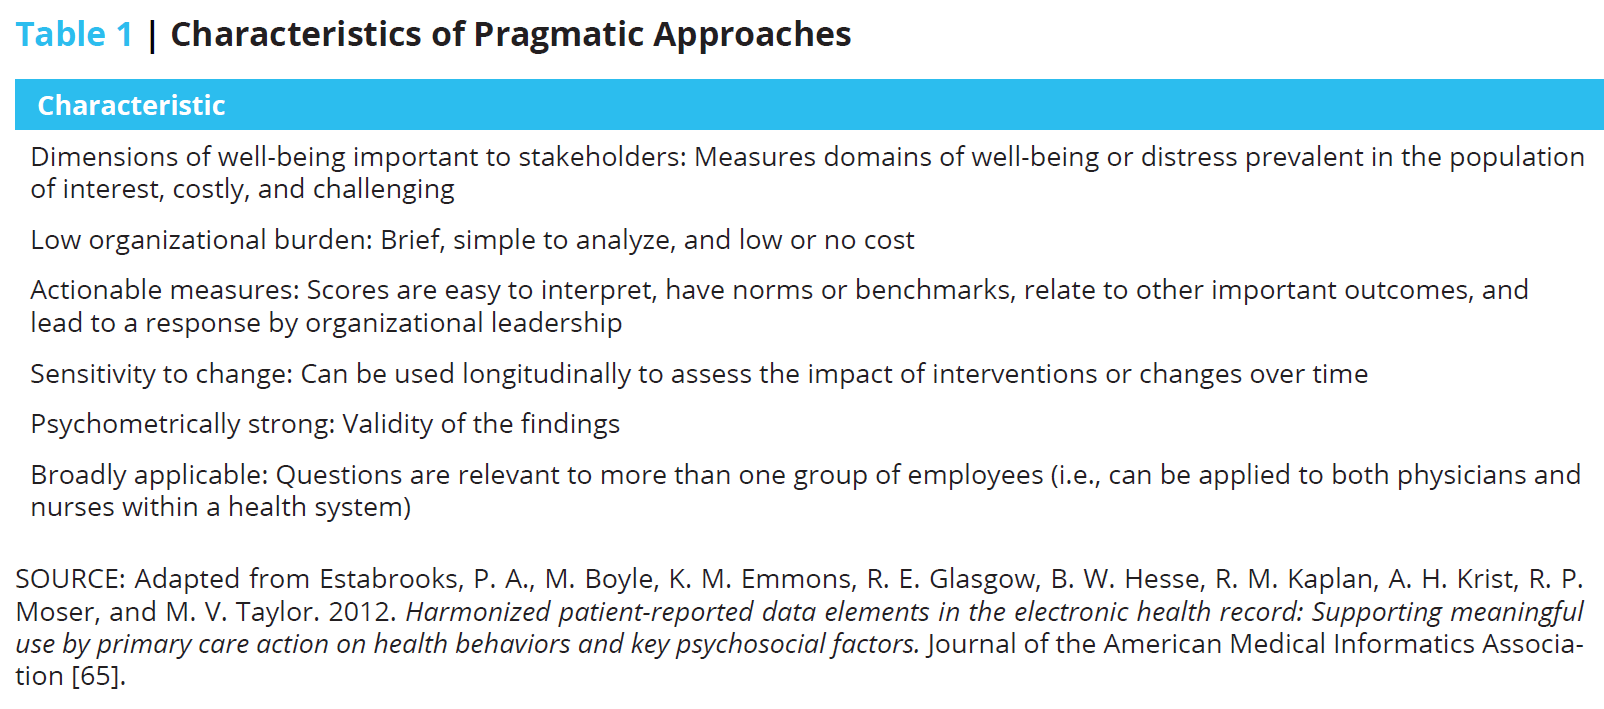 A Pragmatic Approach for Organizations to Measure Health